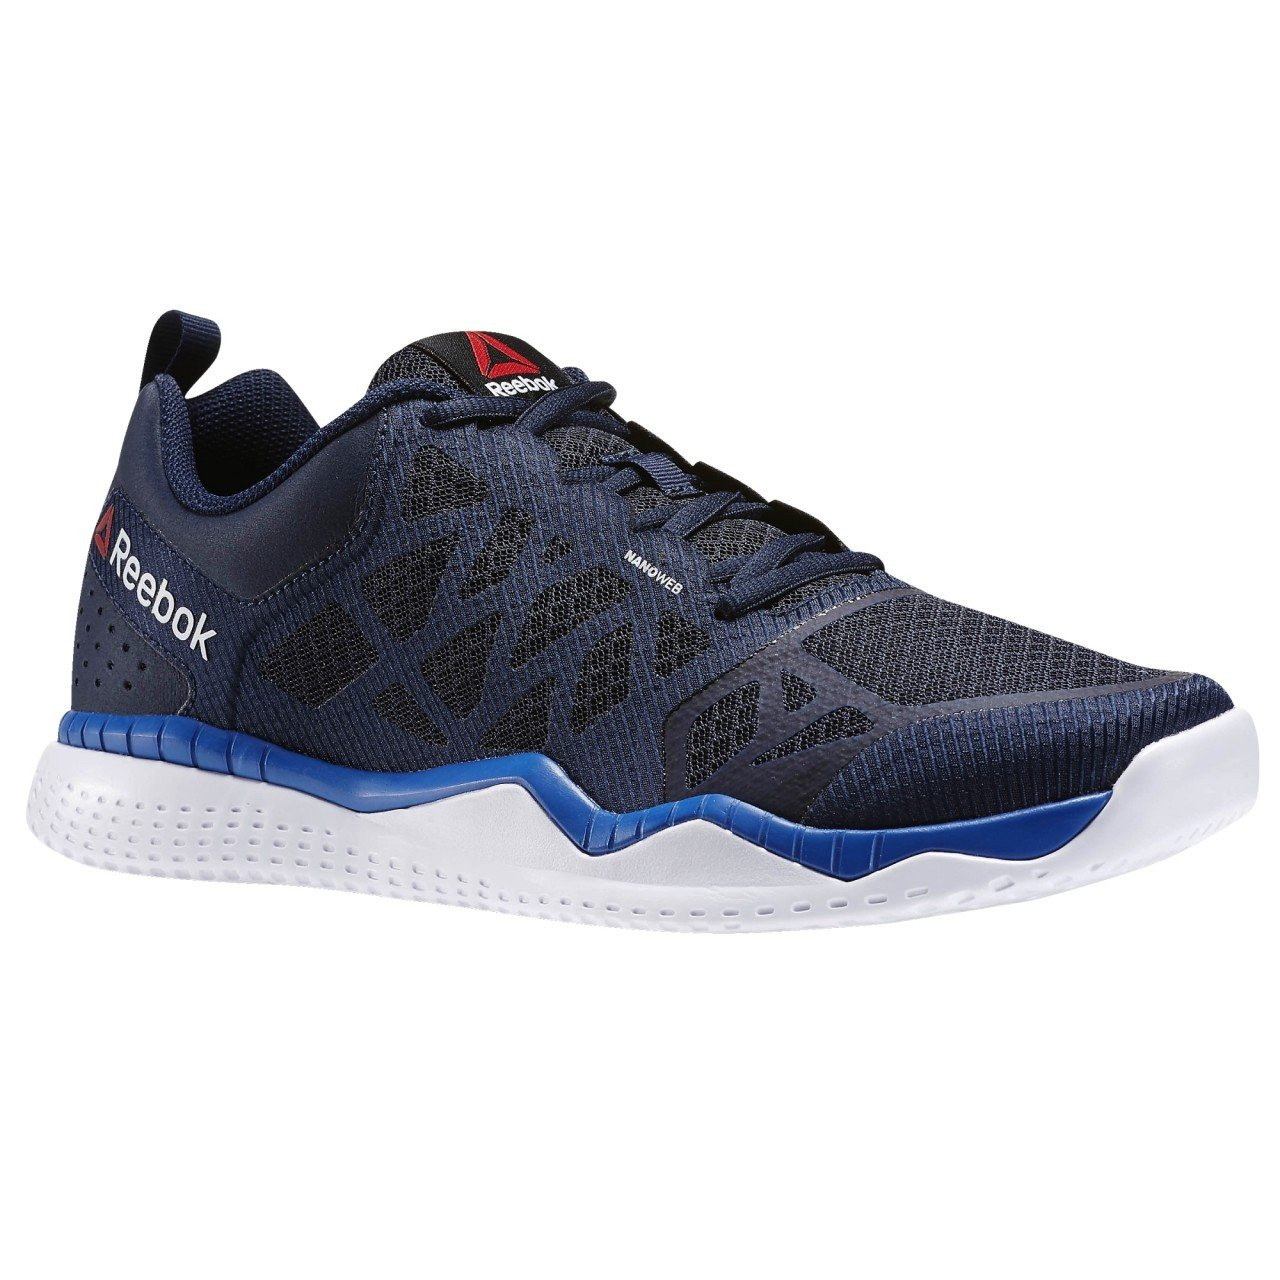 Reebok Herren Zprint Train Turnschuhe